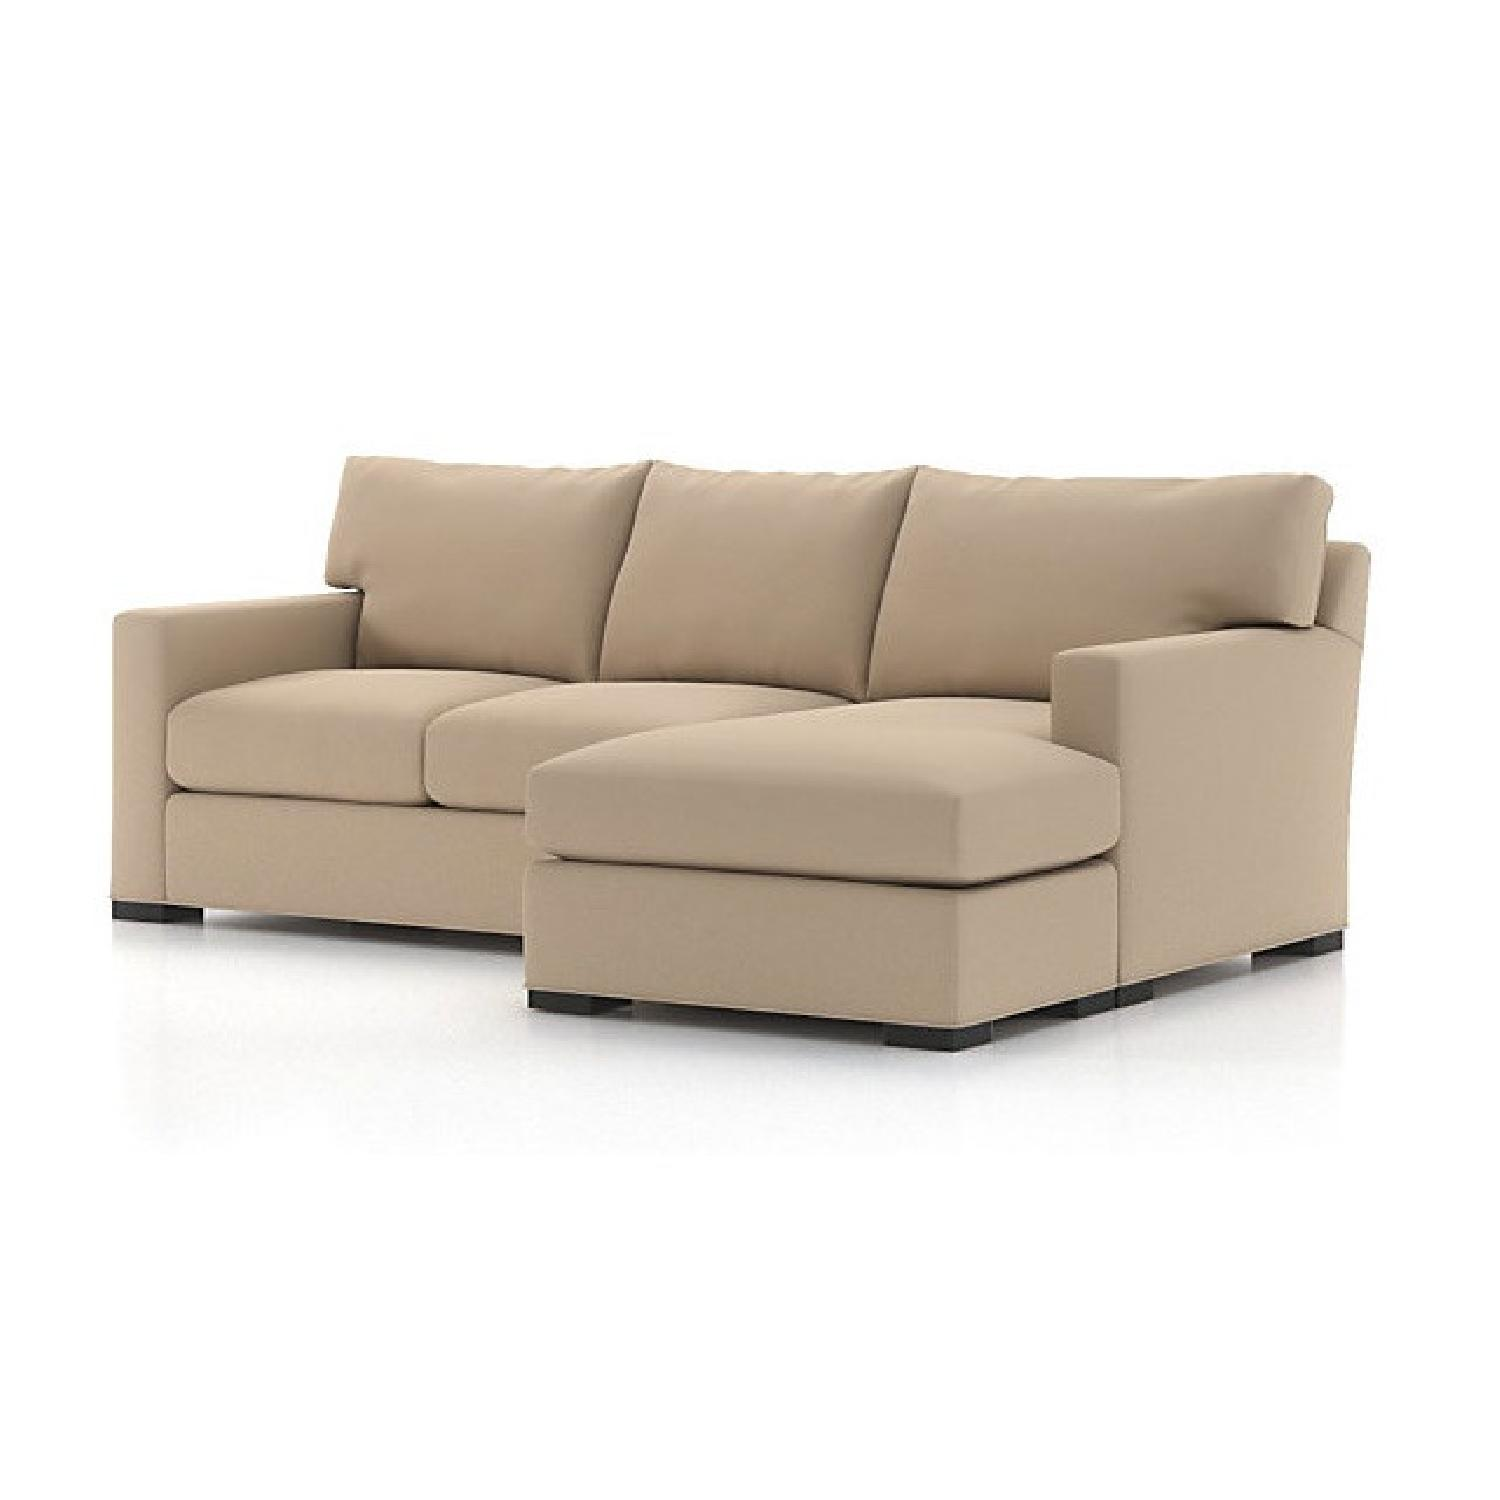 Crate & Barrel Davis Chaise Sectional Sofa